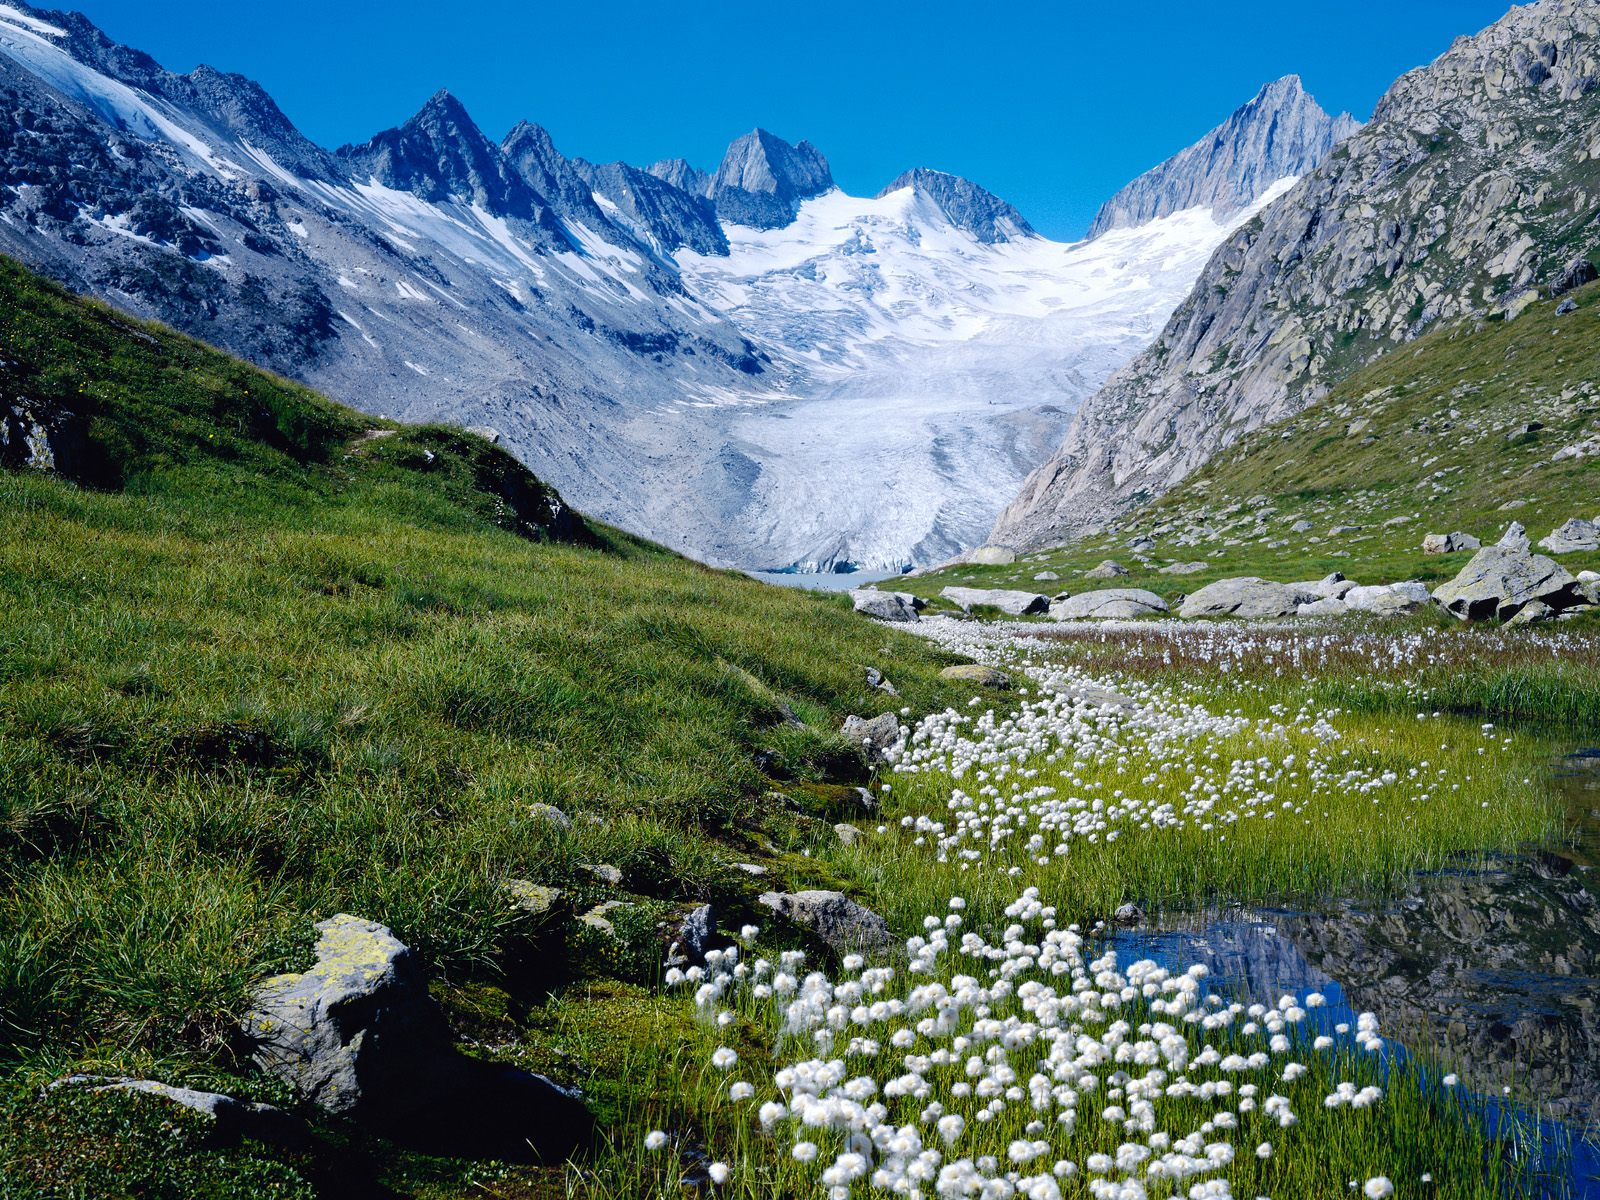 White Flowers Ice-Flow in Switzerland 726.95 Kb